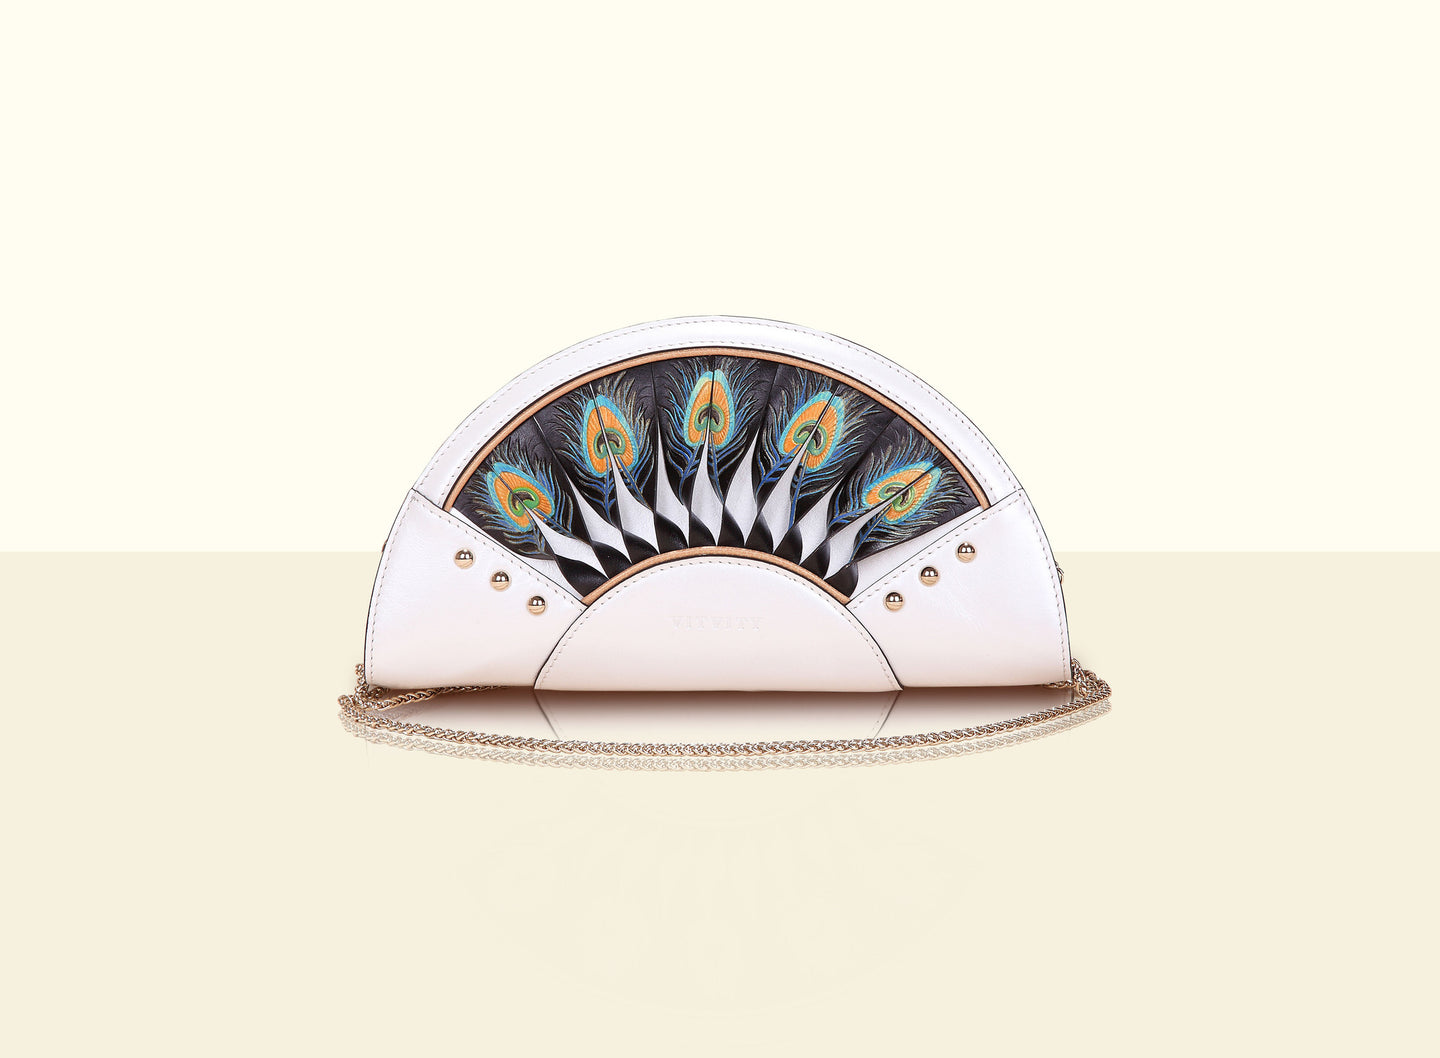 Preorder - Exquisite Fan Clutch - Pearl White and Black